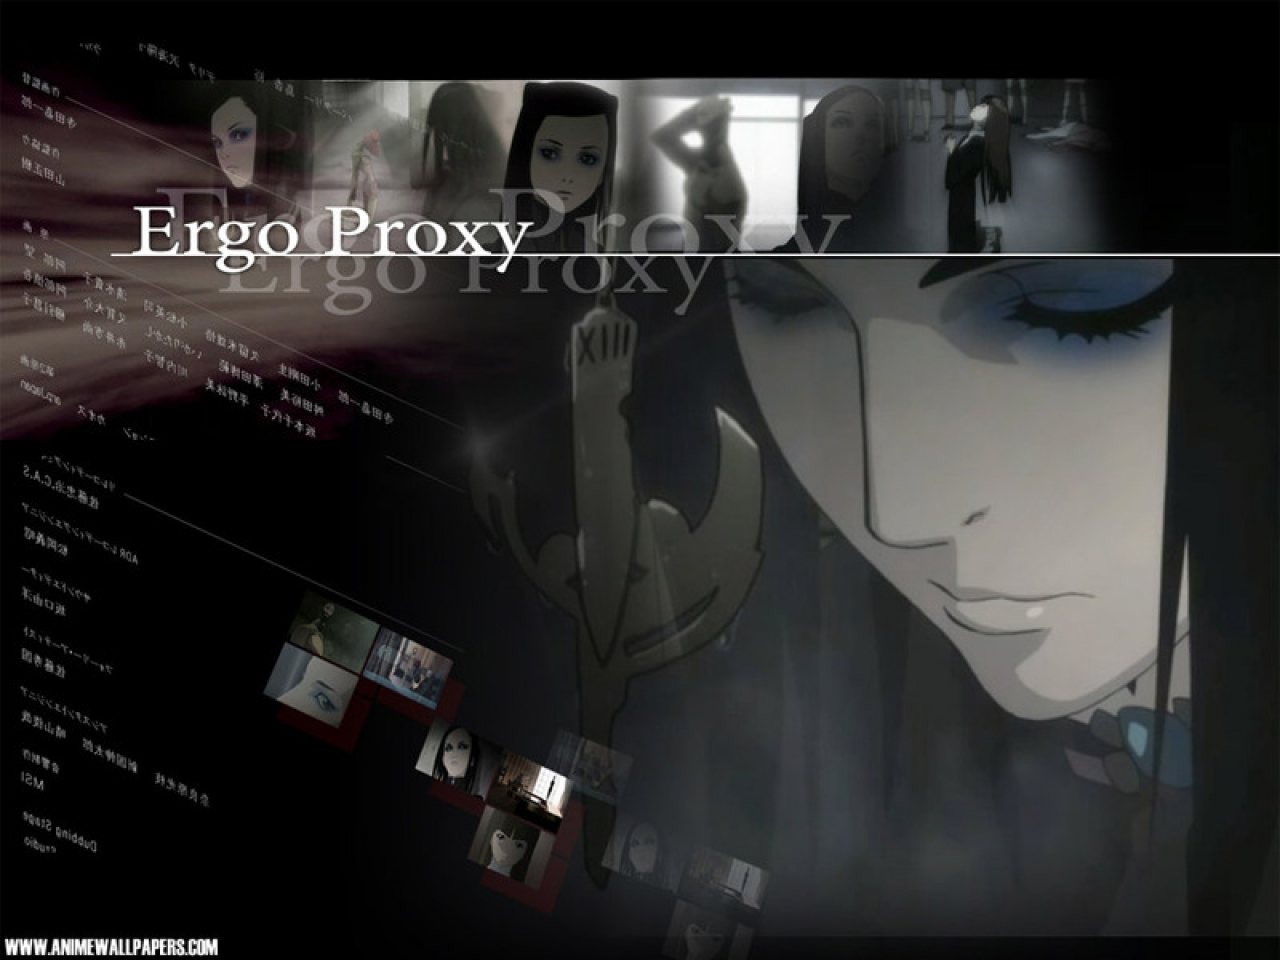 Borregon Wallpapers: Ergo Proxy Wallpapers